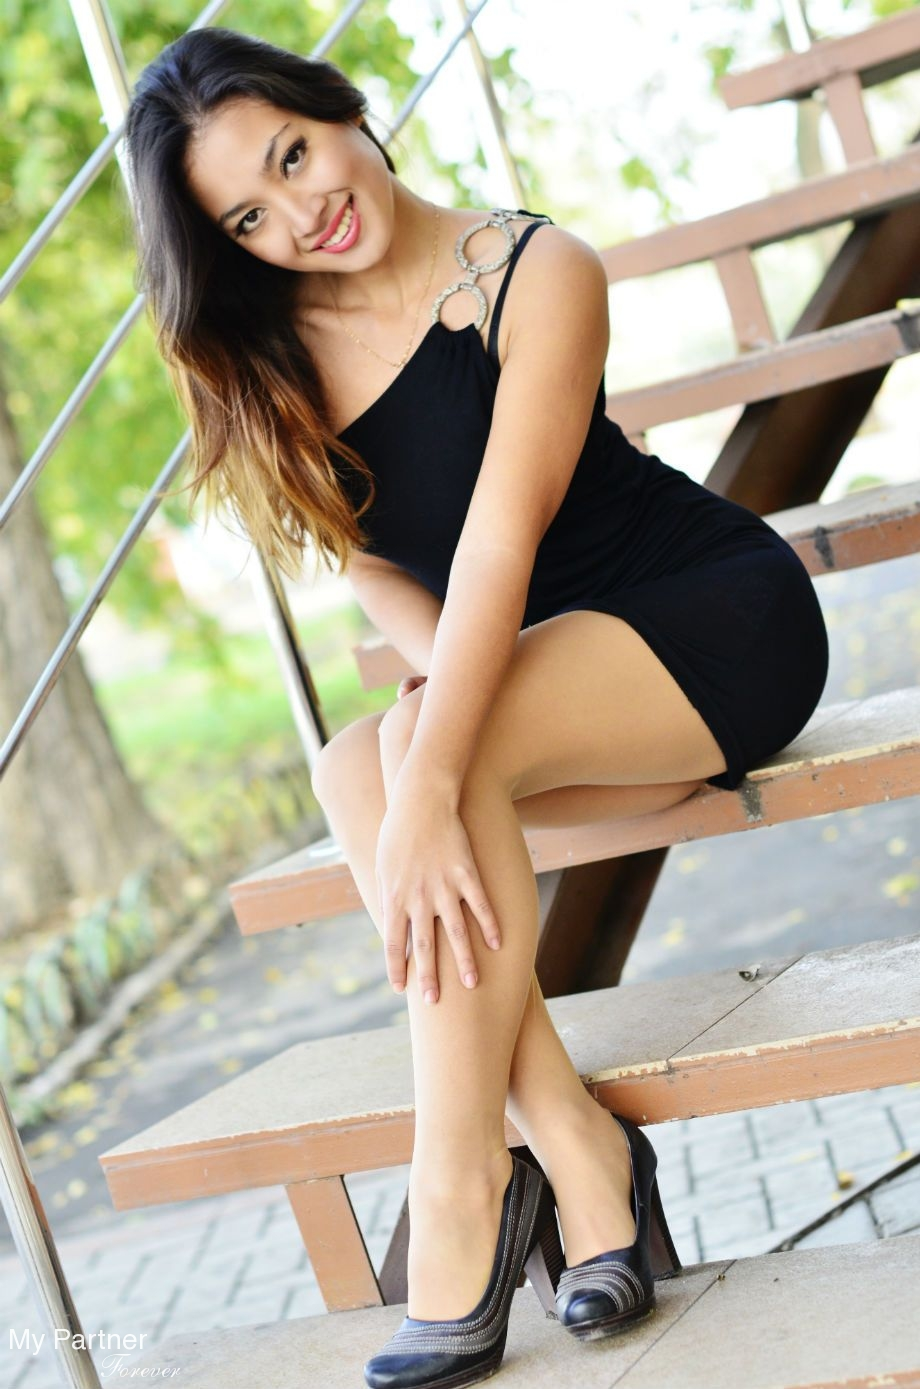 single women in marianna Free marianna personals dating site for people living in marianna, arkansas.